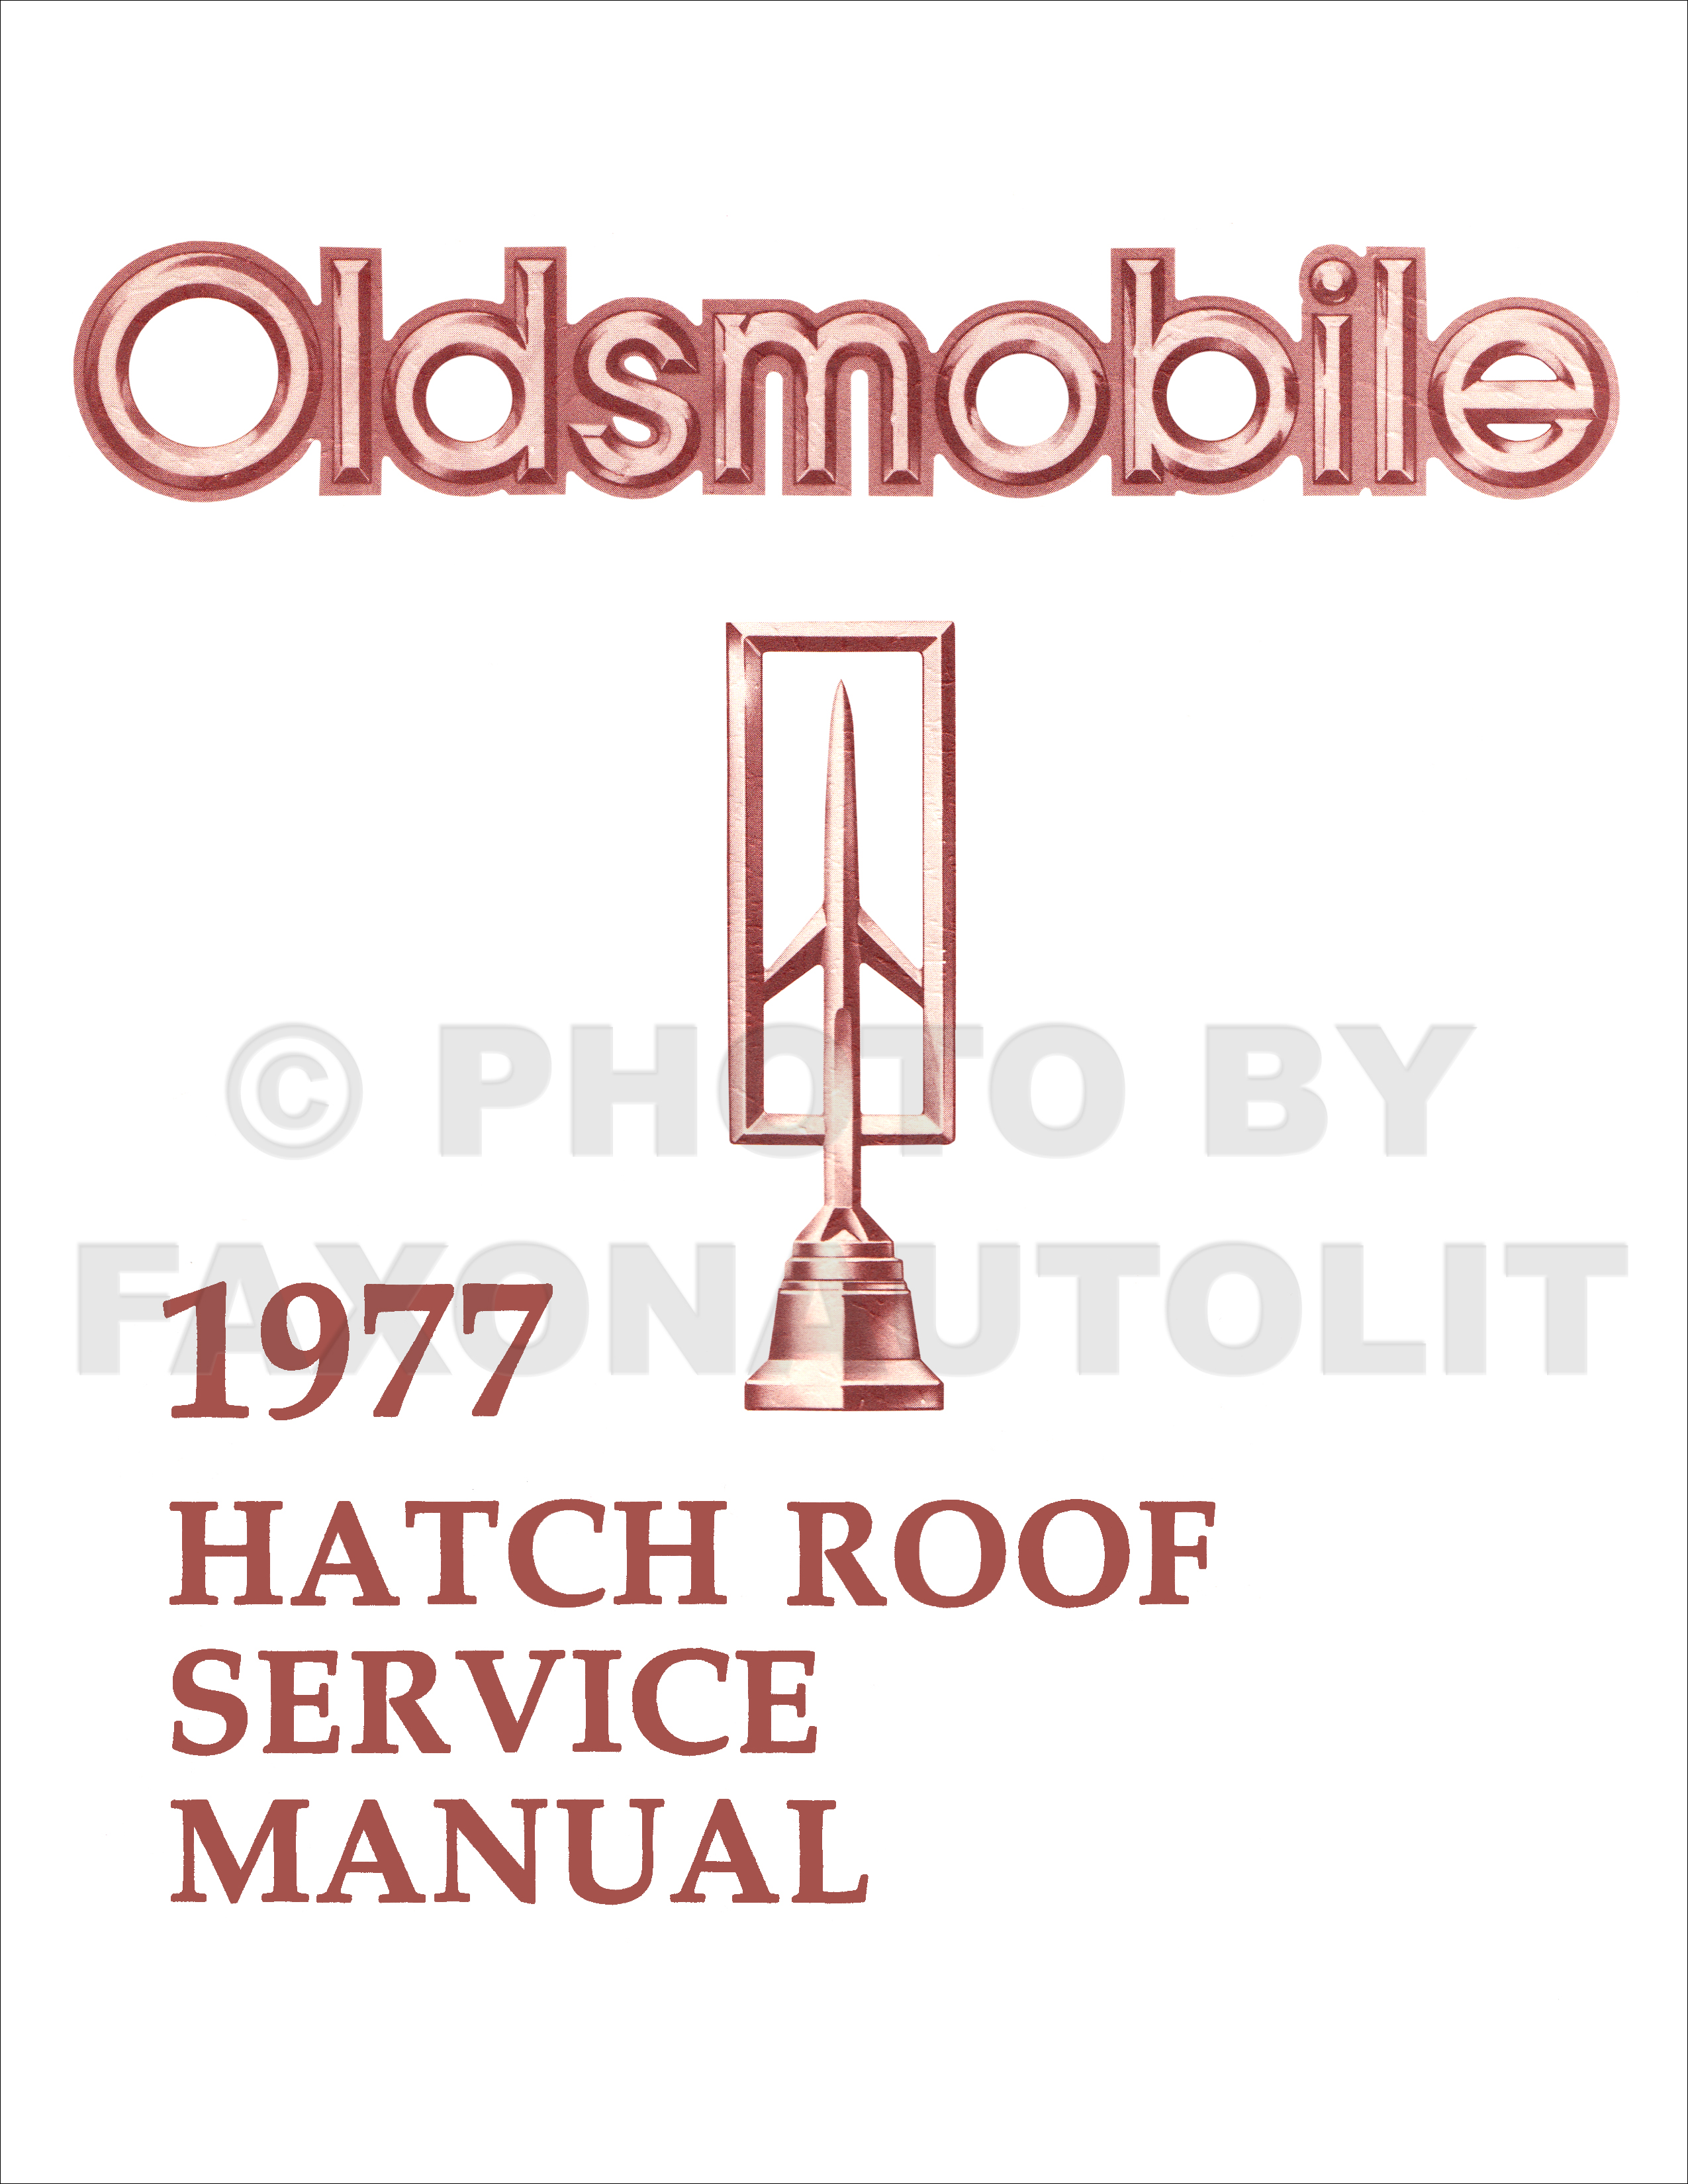 1977 Oldsmobile Cutlass Hurst Hatch Roof T-top Repair Shop Manual Reprint